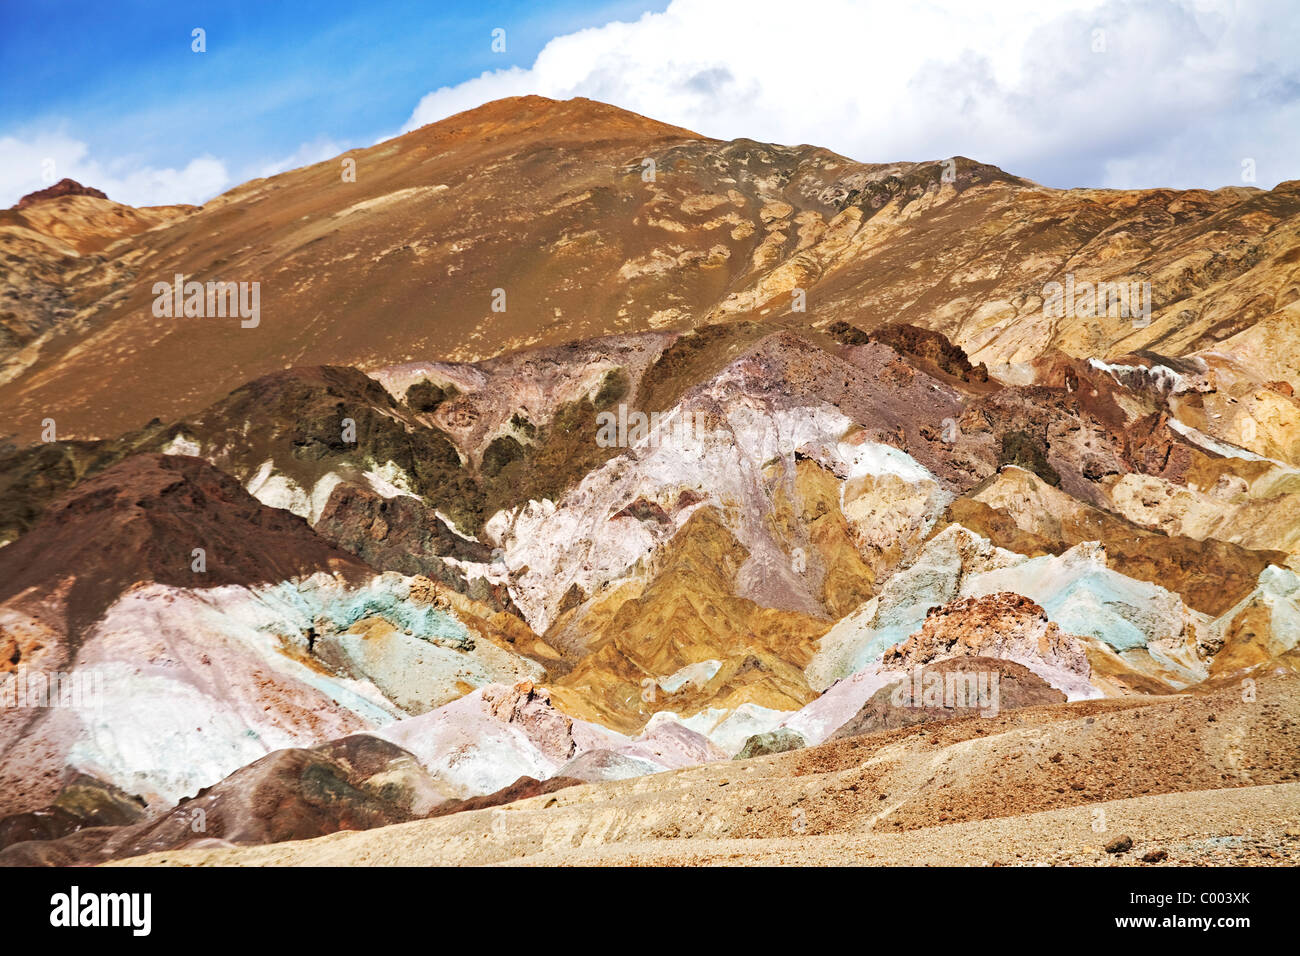 Painted Rocks, Death Valley national Park, California, USA - Stock Image